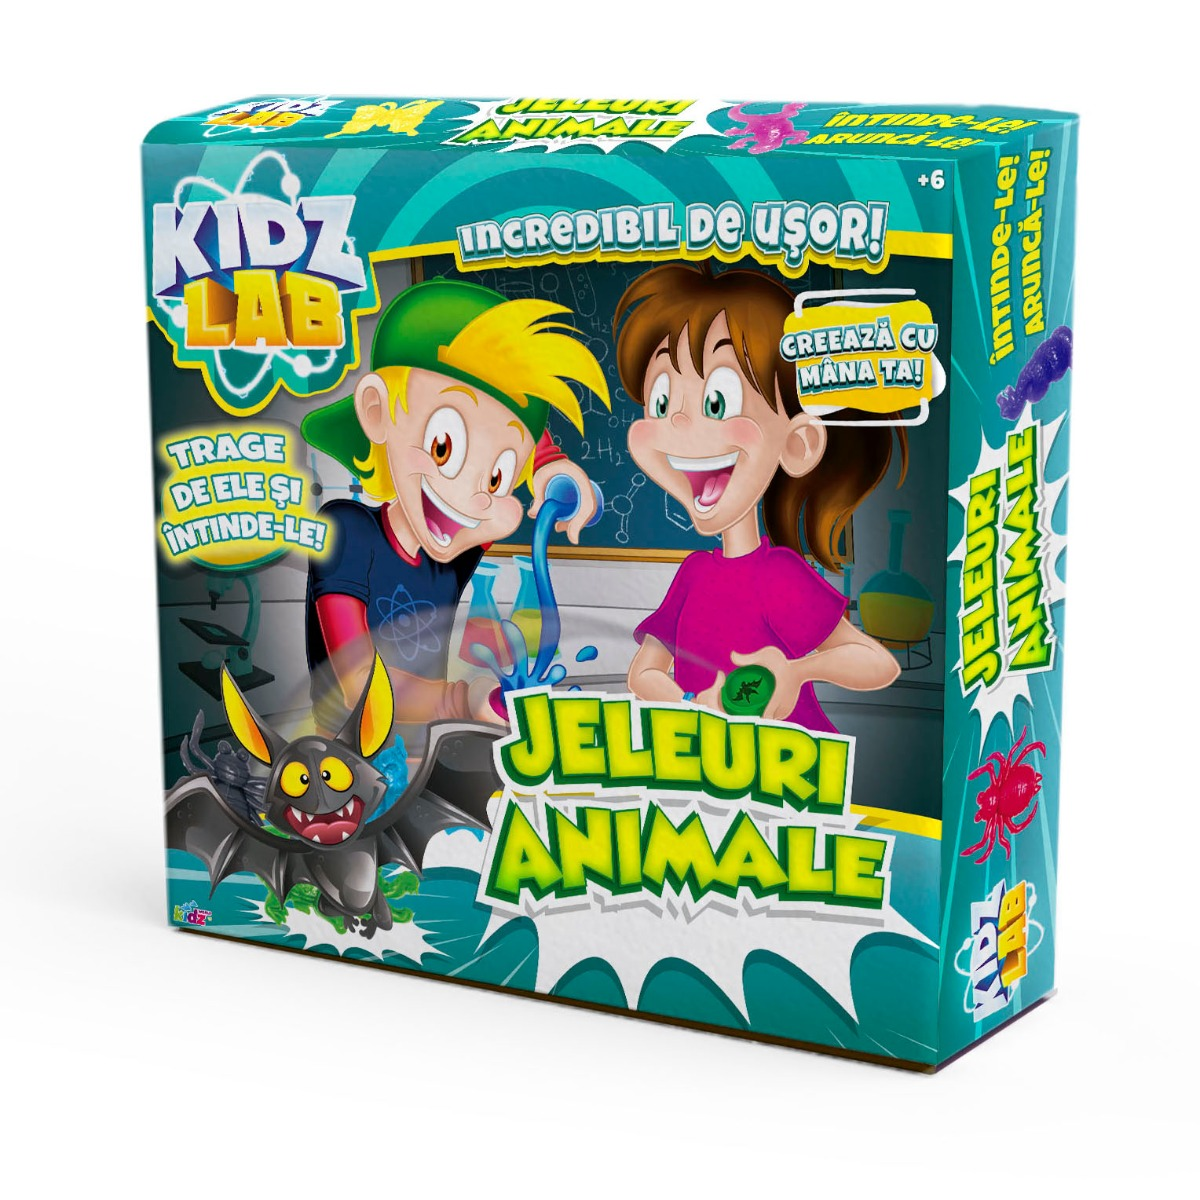 Set de creatie Kidz Lab, Jeleuri Animale